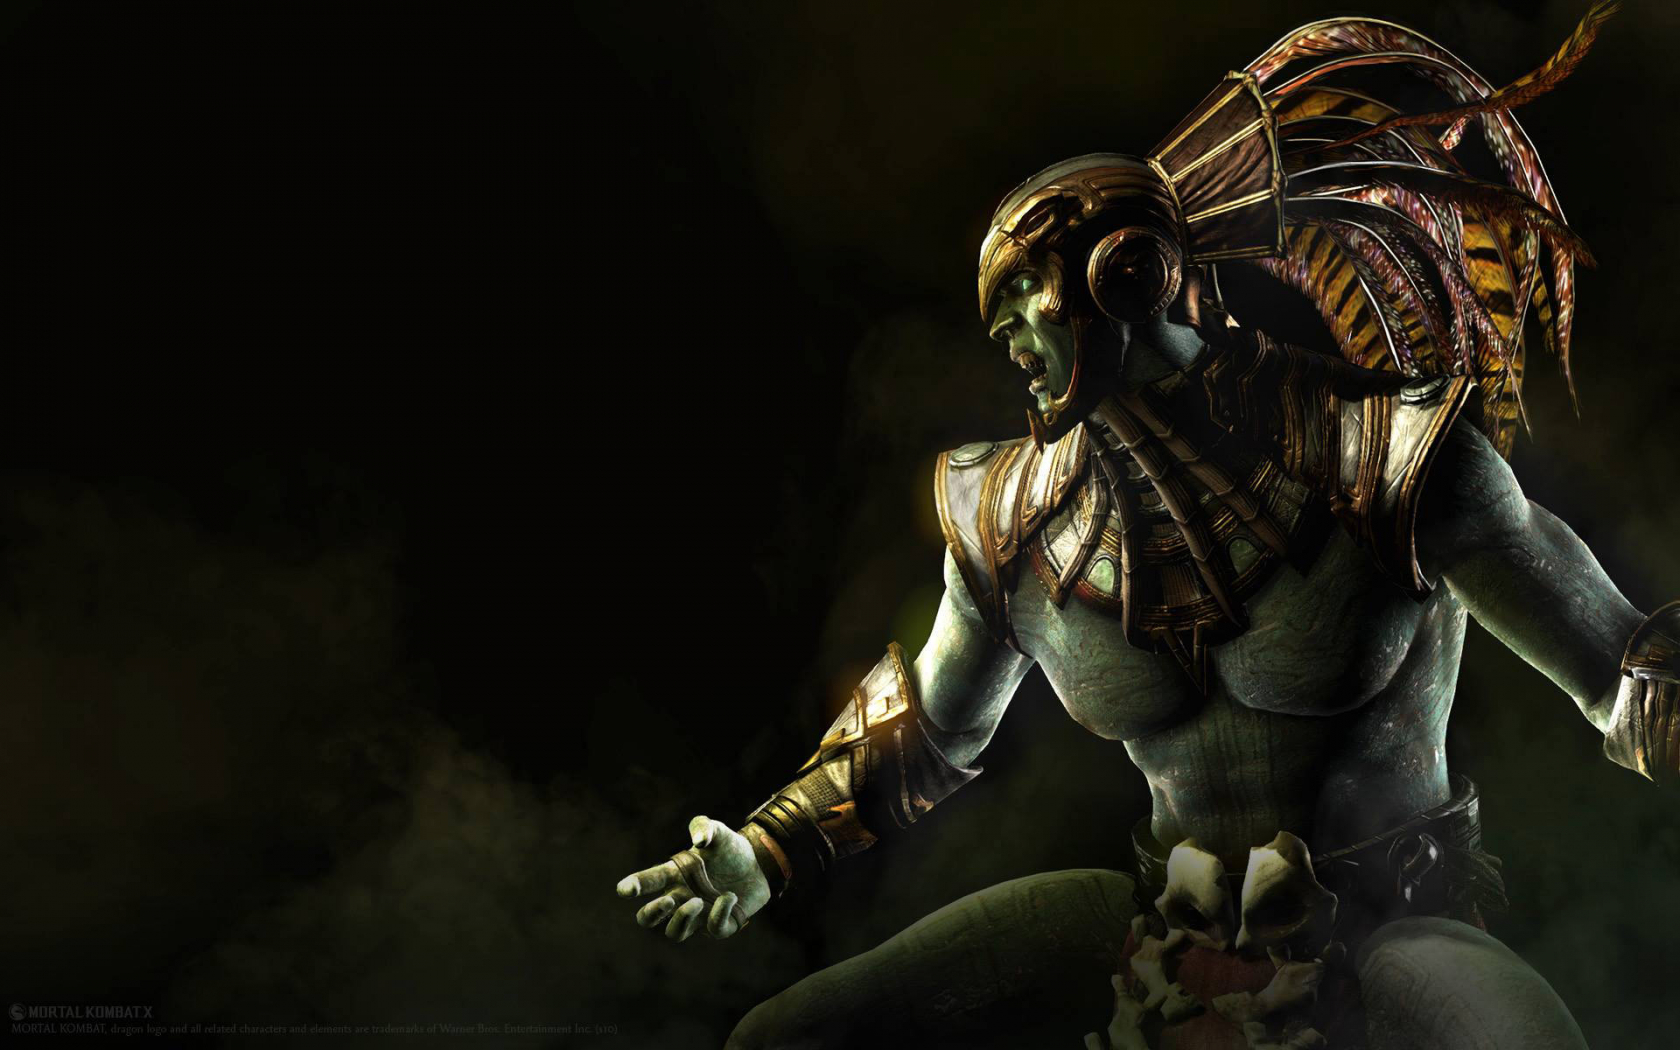 Free Download Mortal Kombat X Wallpapers Featuring Oldnew